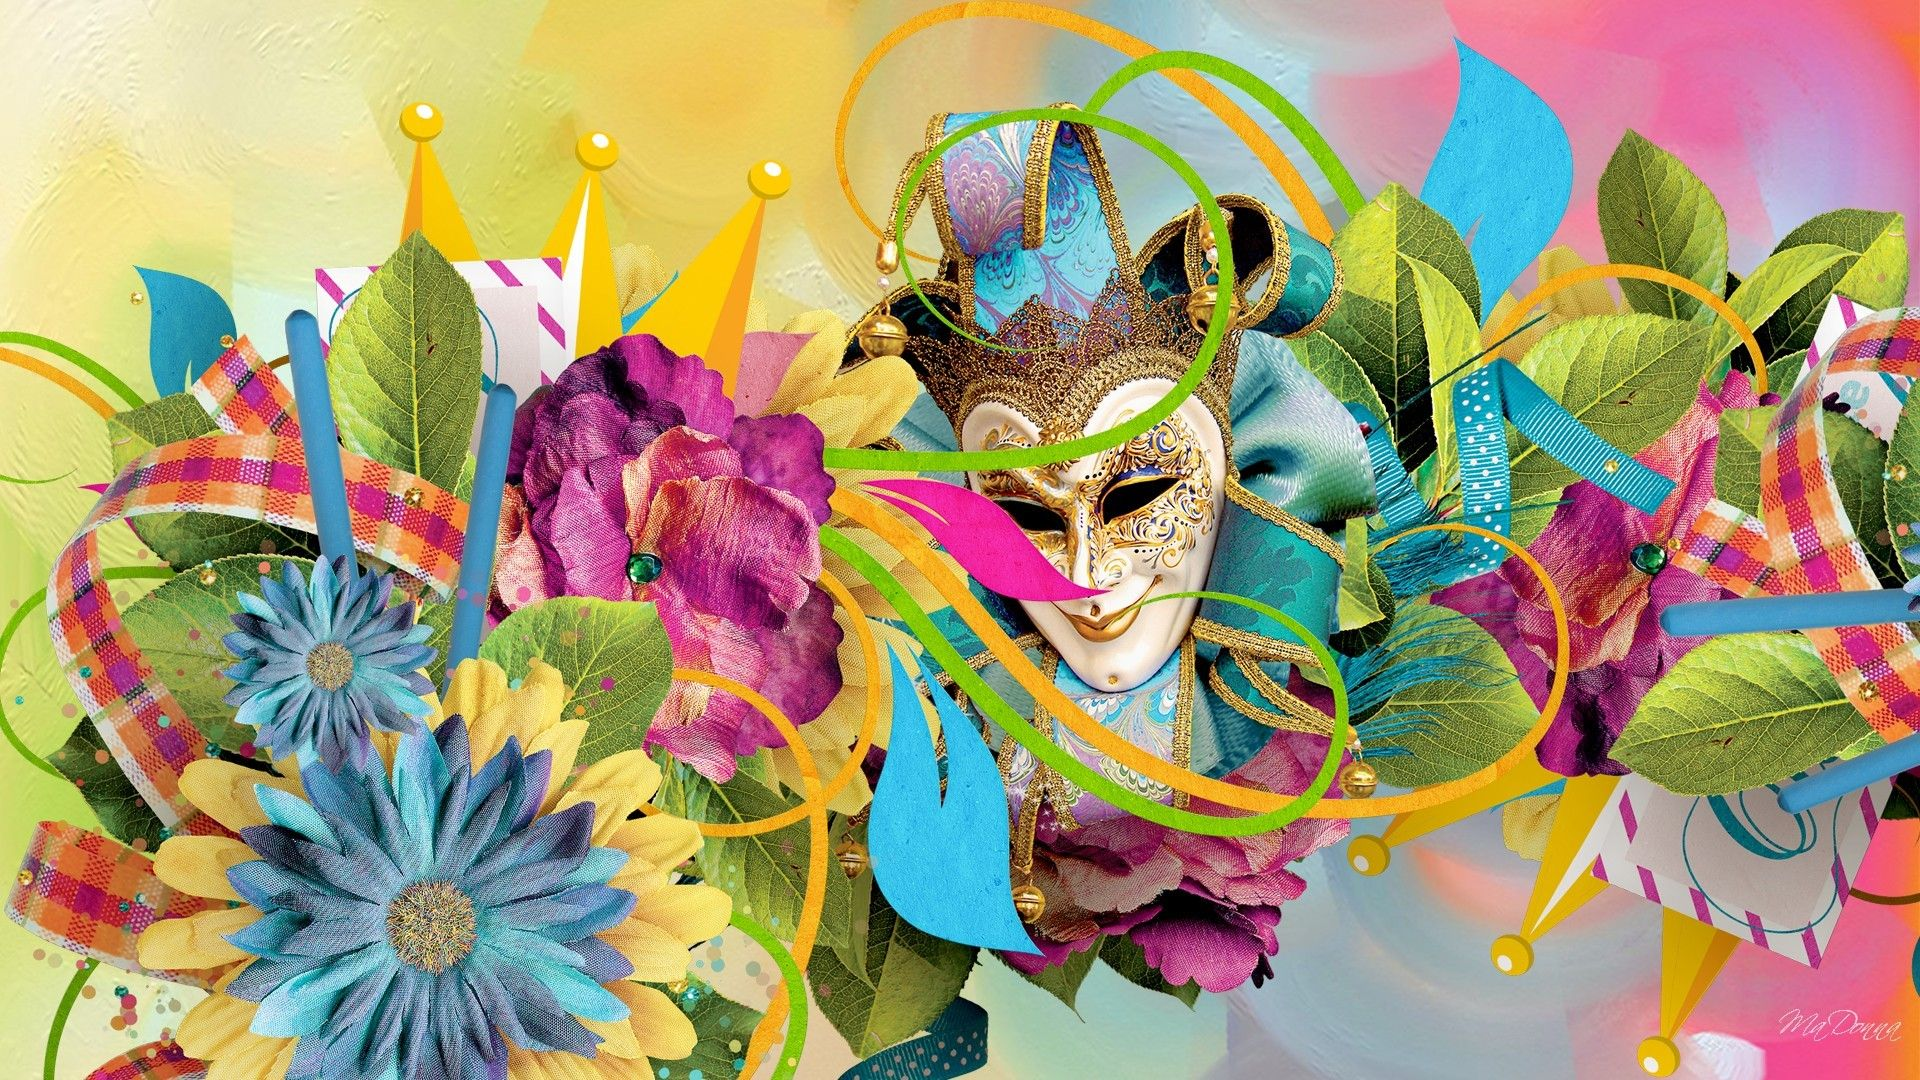 1920x1080 Flower: Carnival Colorful New Orleans Flowers Celebrate Brazil Lent ...